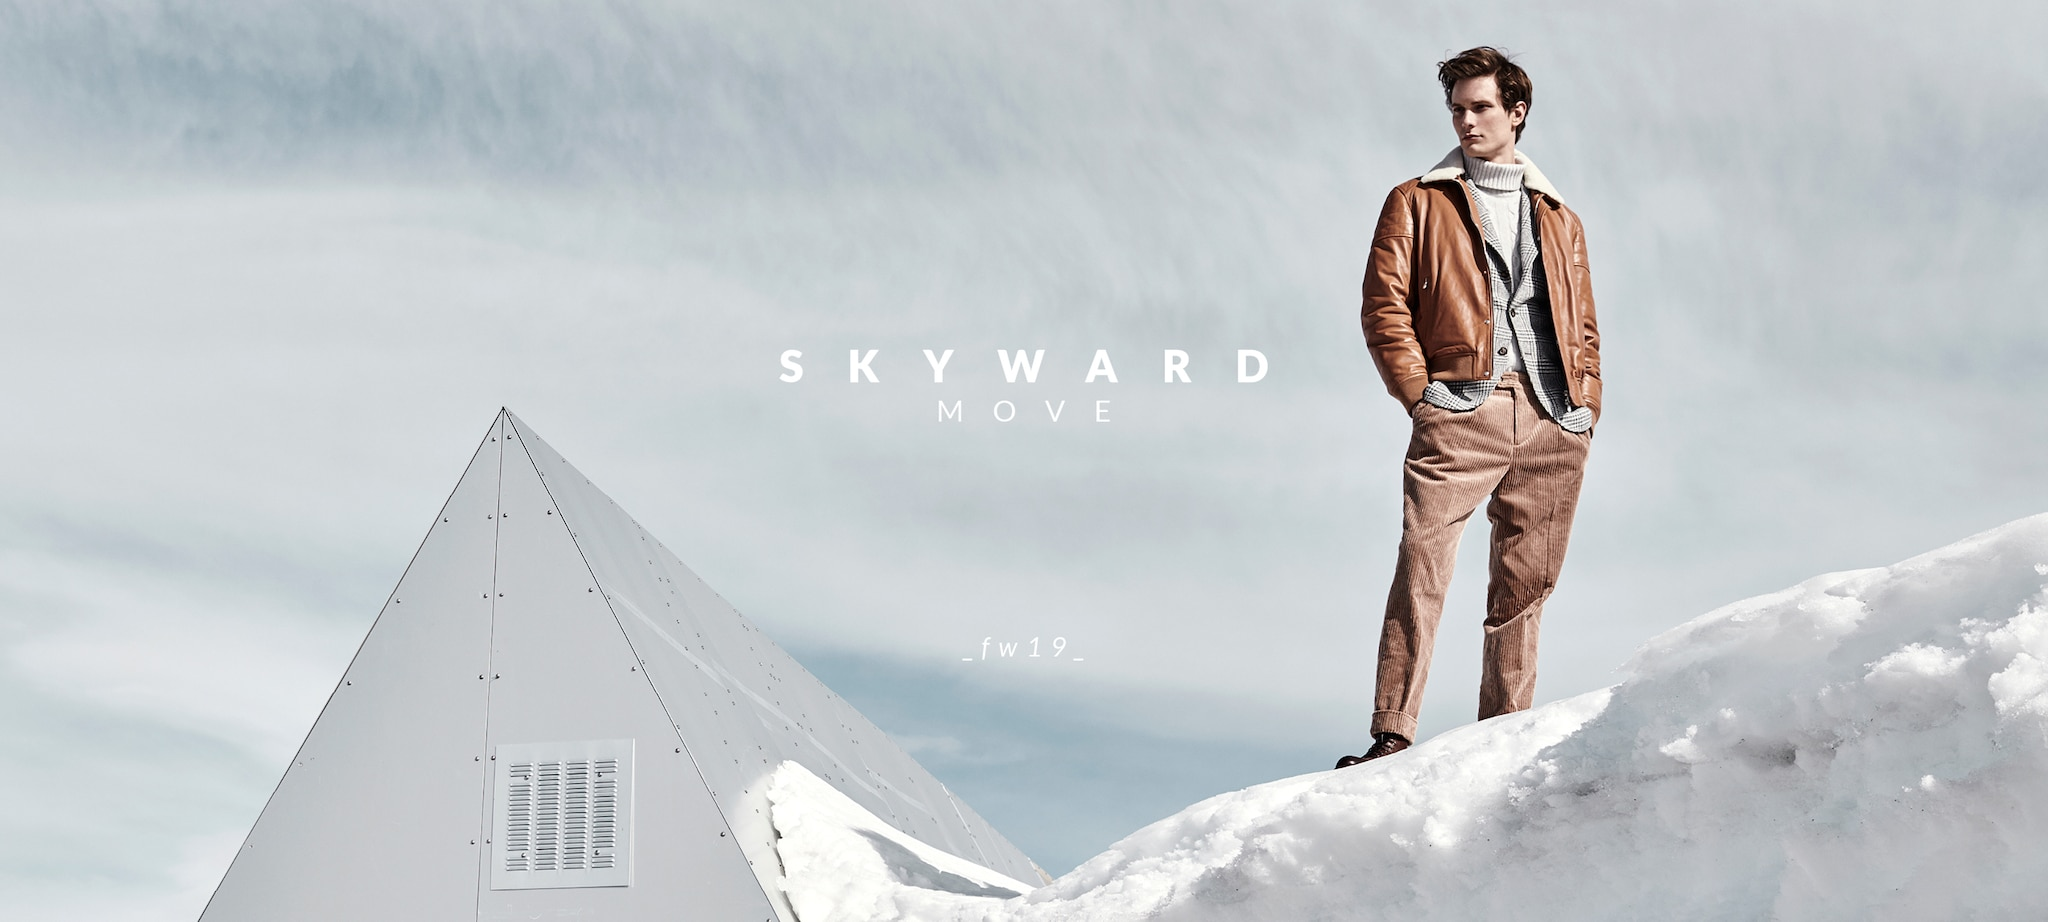 Man FW 19 - Skyward Move